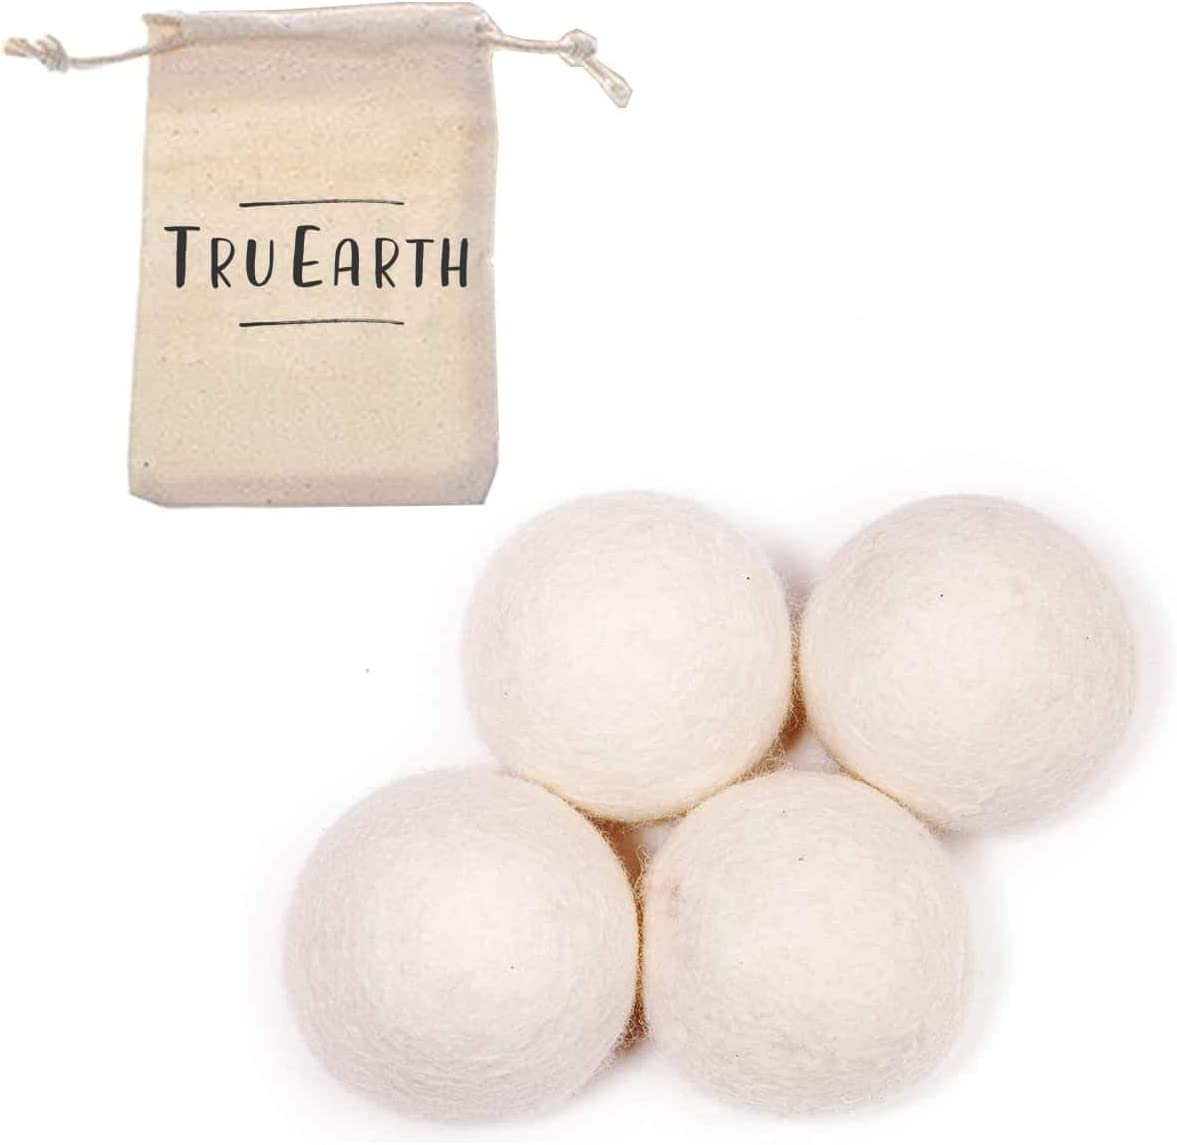 Wool Dryer Balls by Tru Earth 4-Pack, XL Premium Reusable Natural Fabric Softener (4)